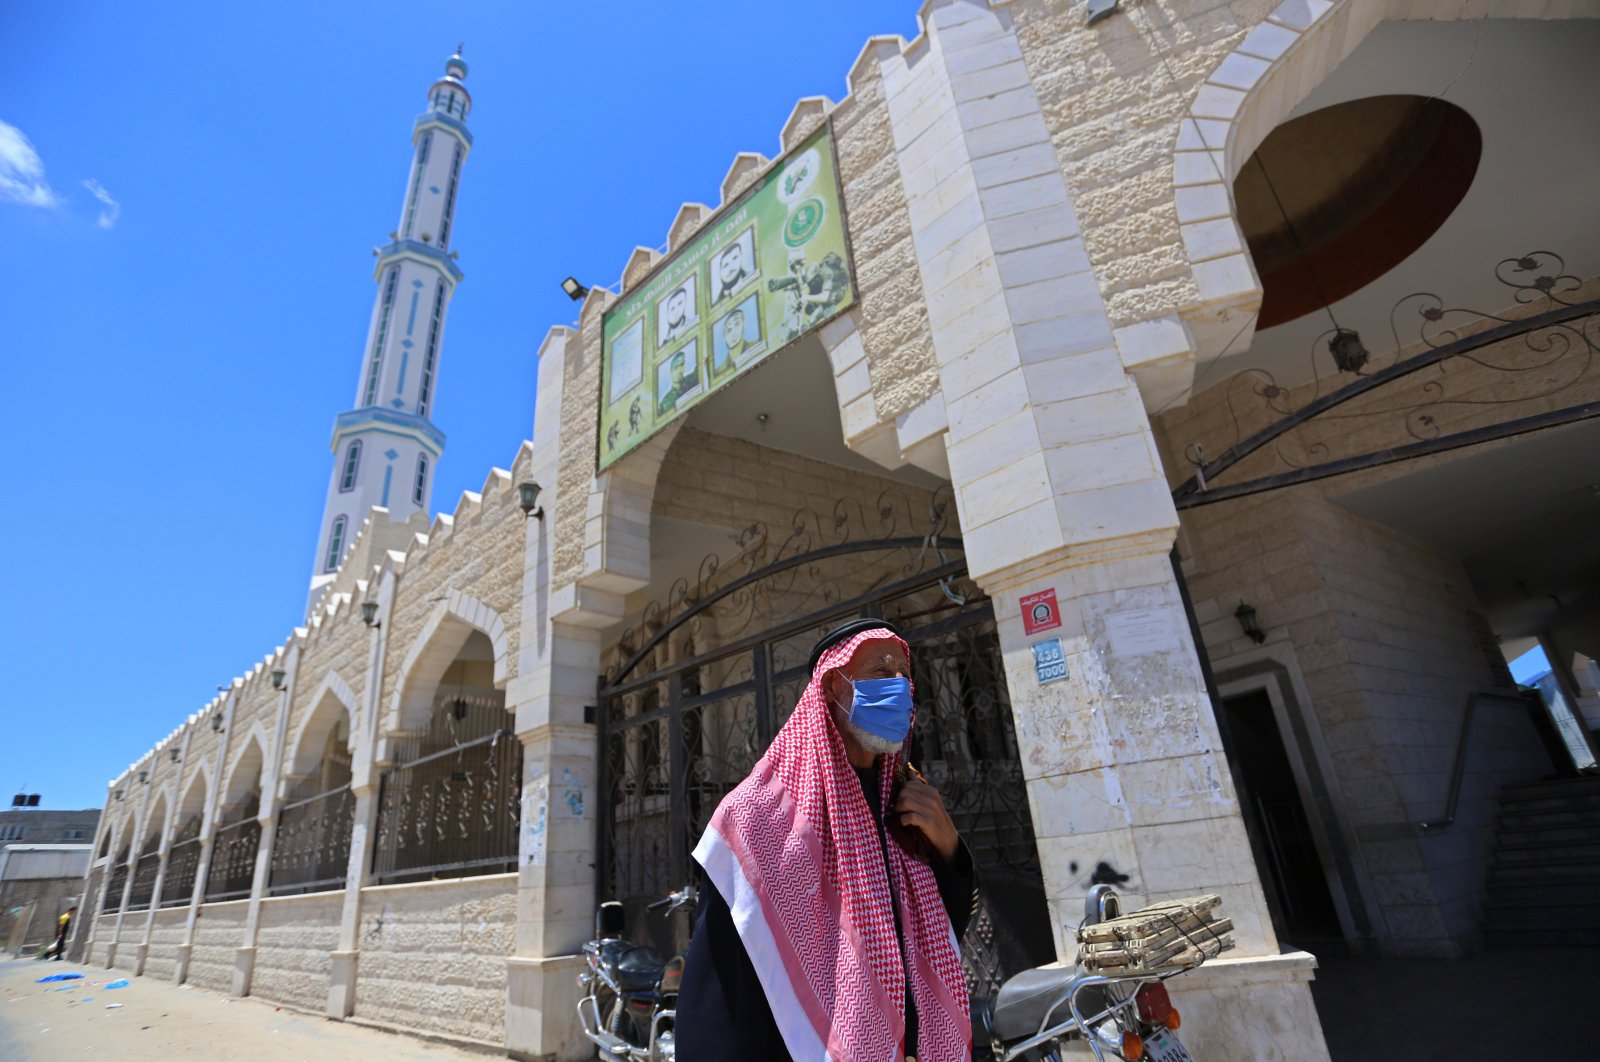 A Palestinian man wearing a mask stands right beside a mosque, Gaza, May 29, 2020.